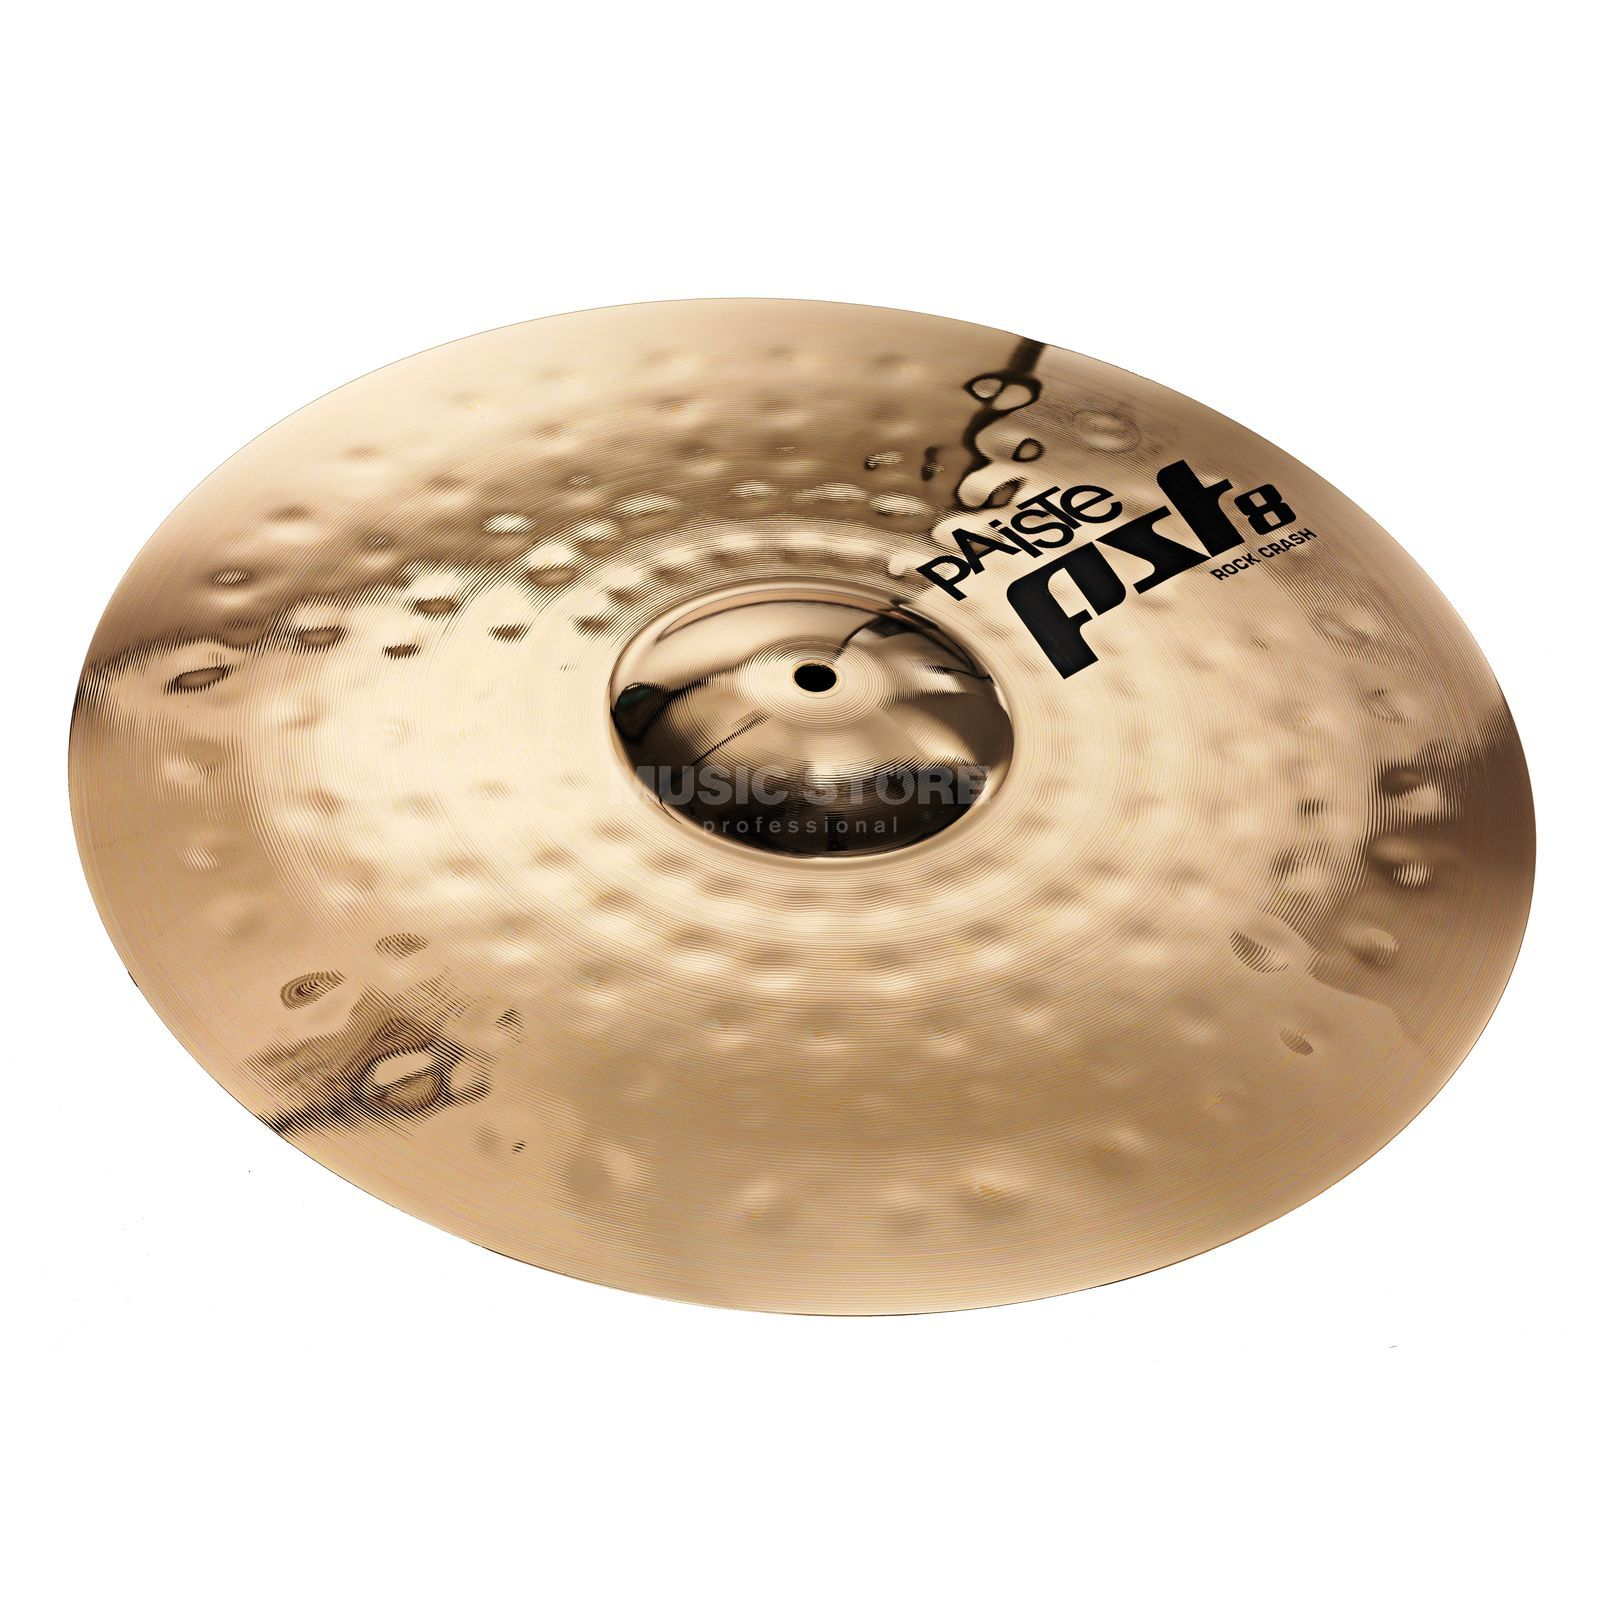 "Paiste PST8 Rock Crash 17"", Reflector Finish Produktbild"